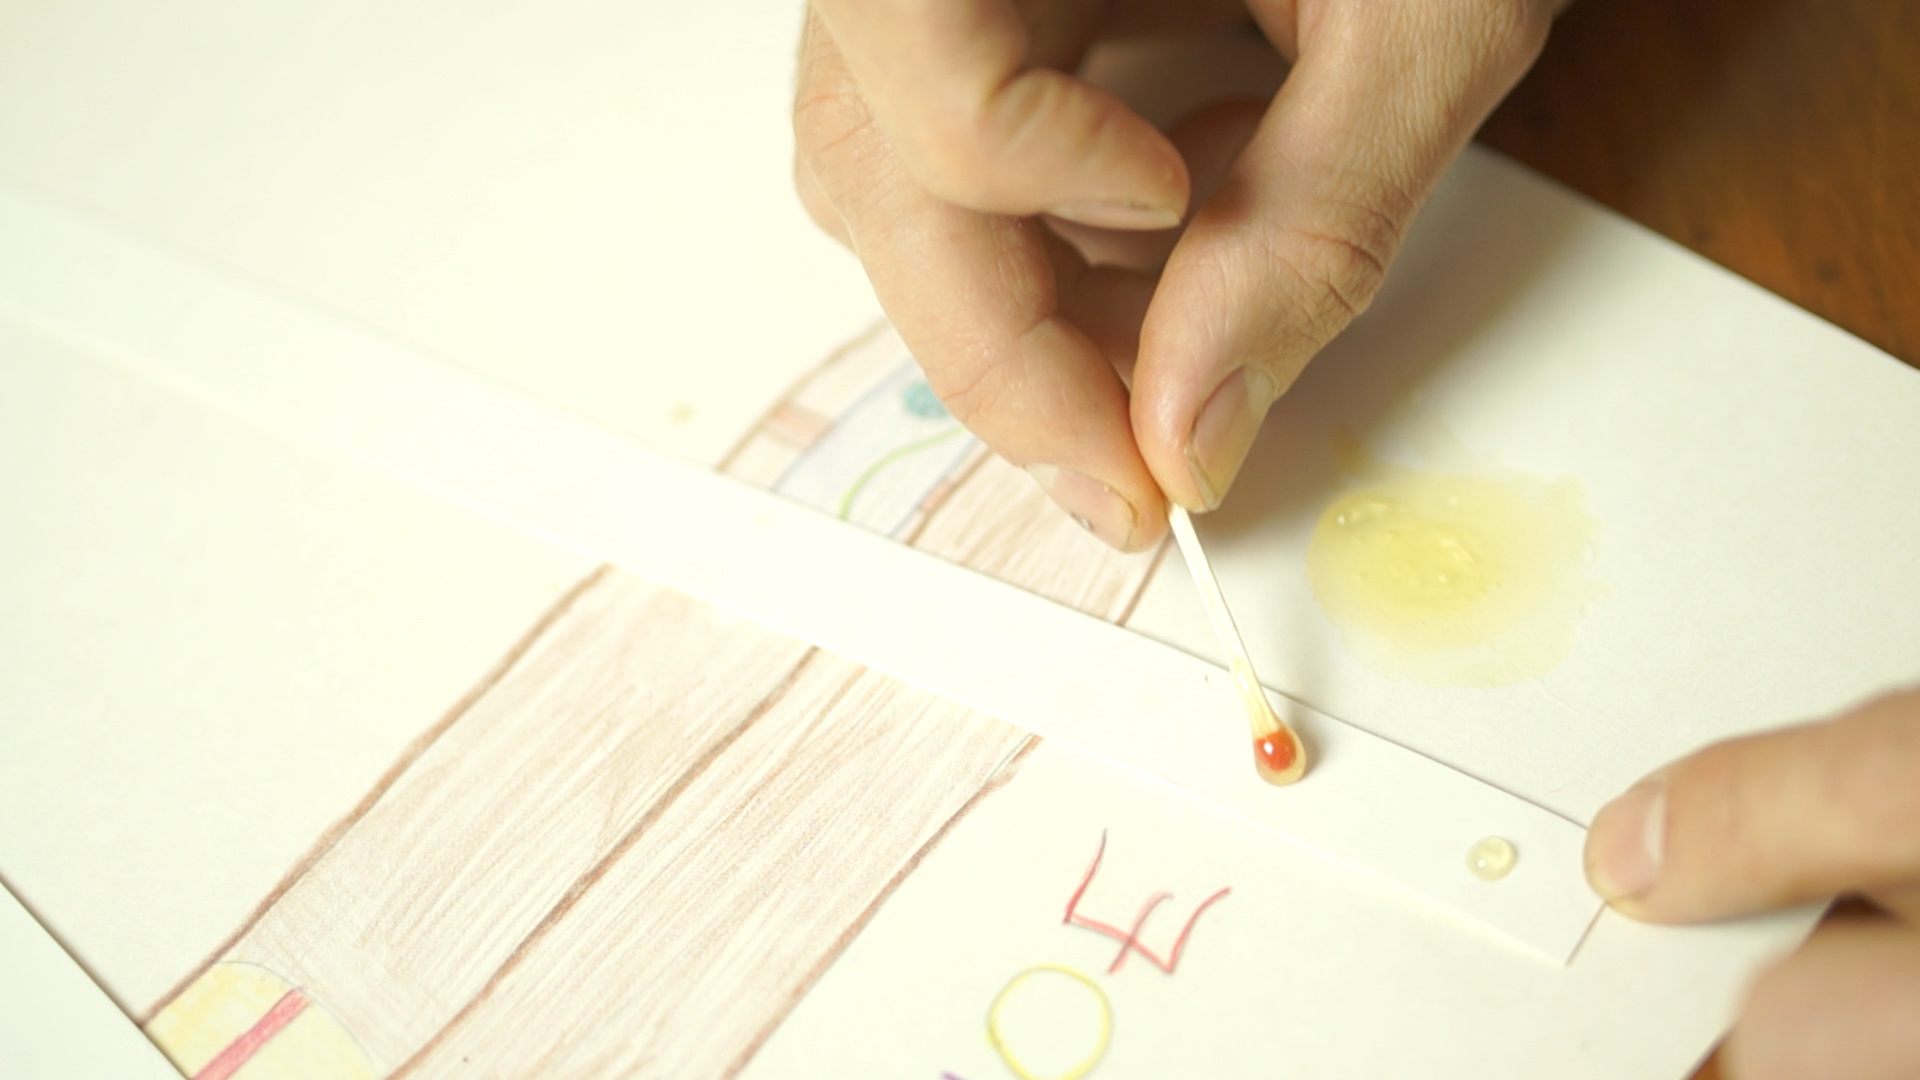 Use a match to put little dots on the cardboard as rivets